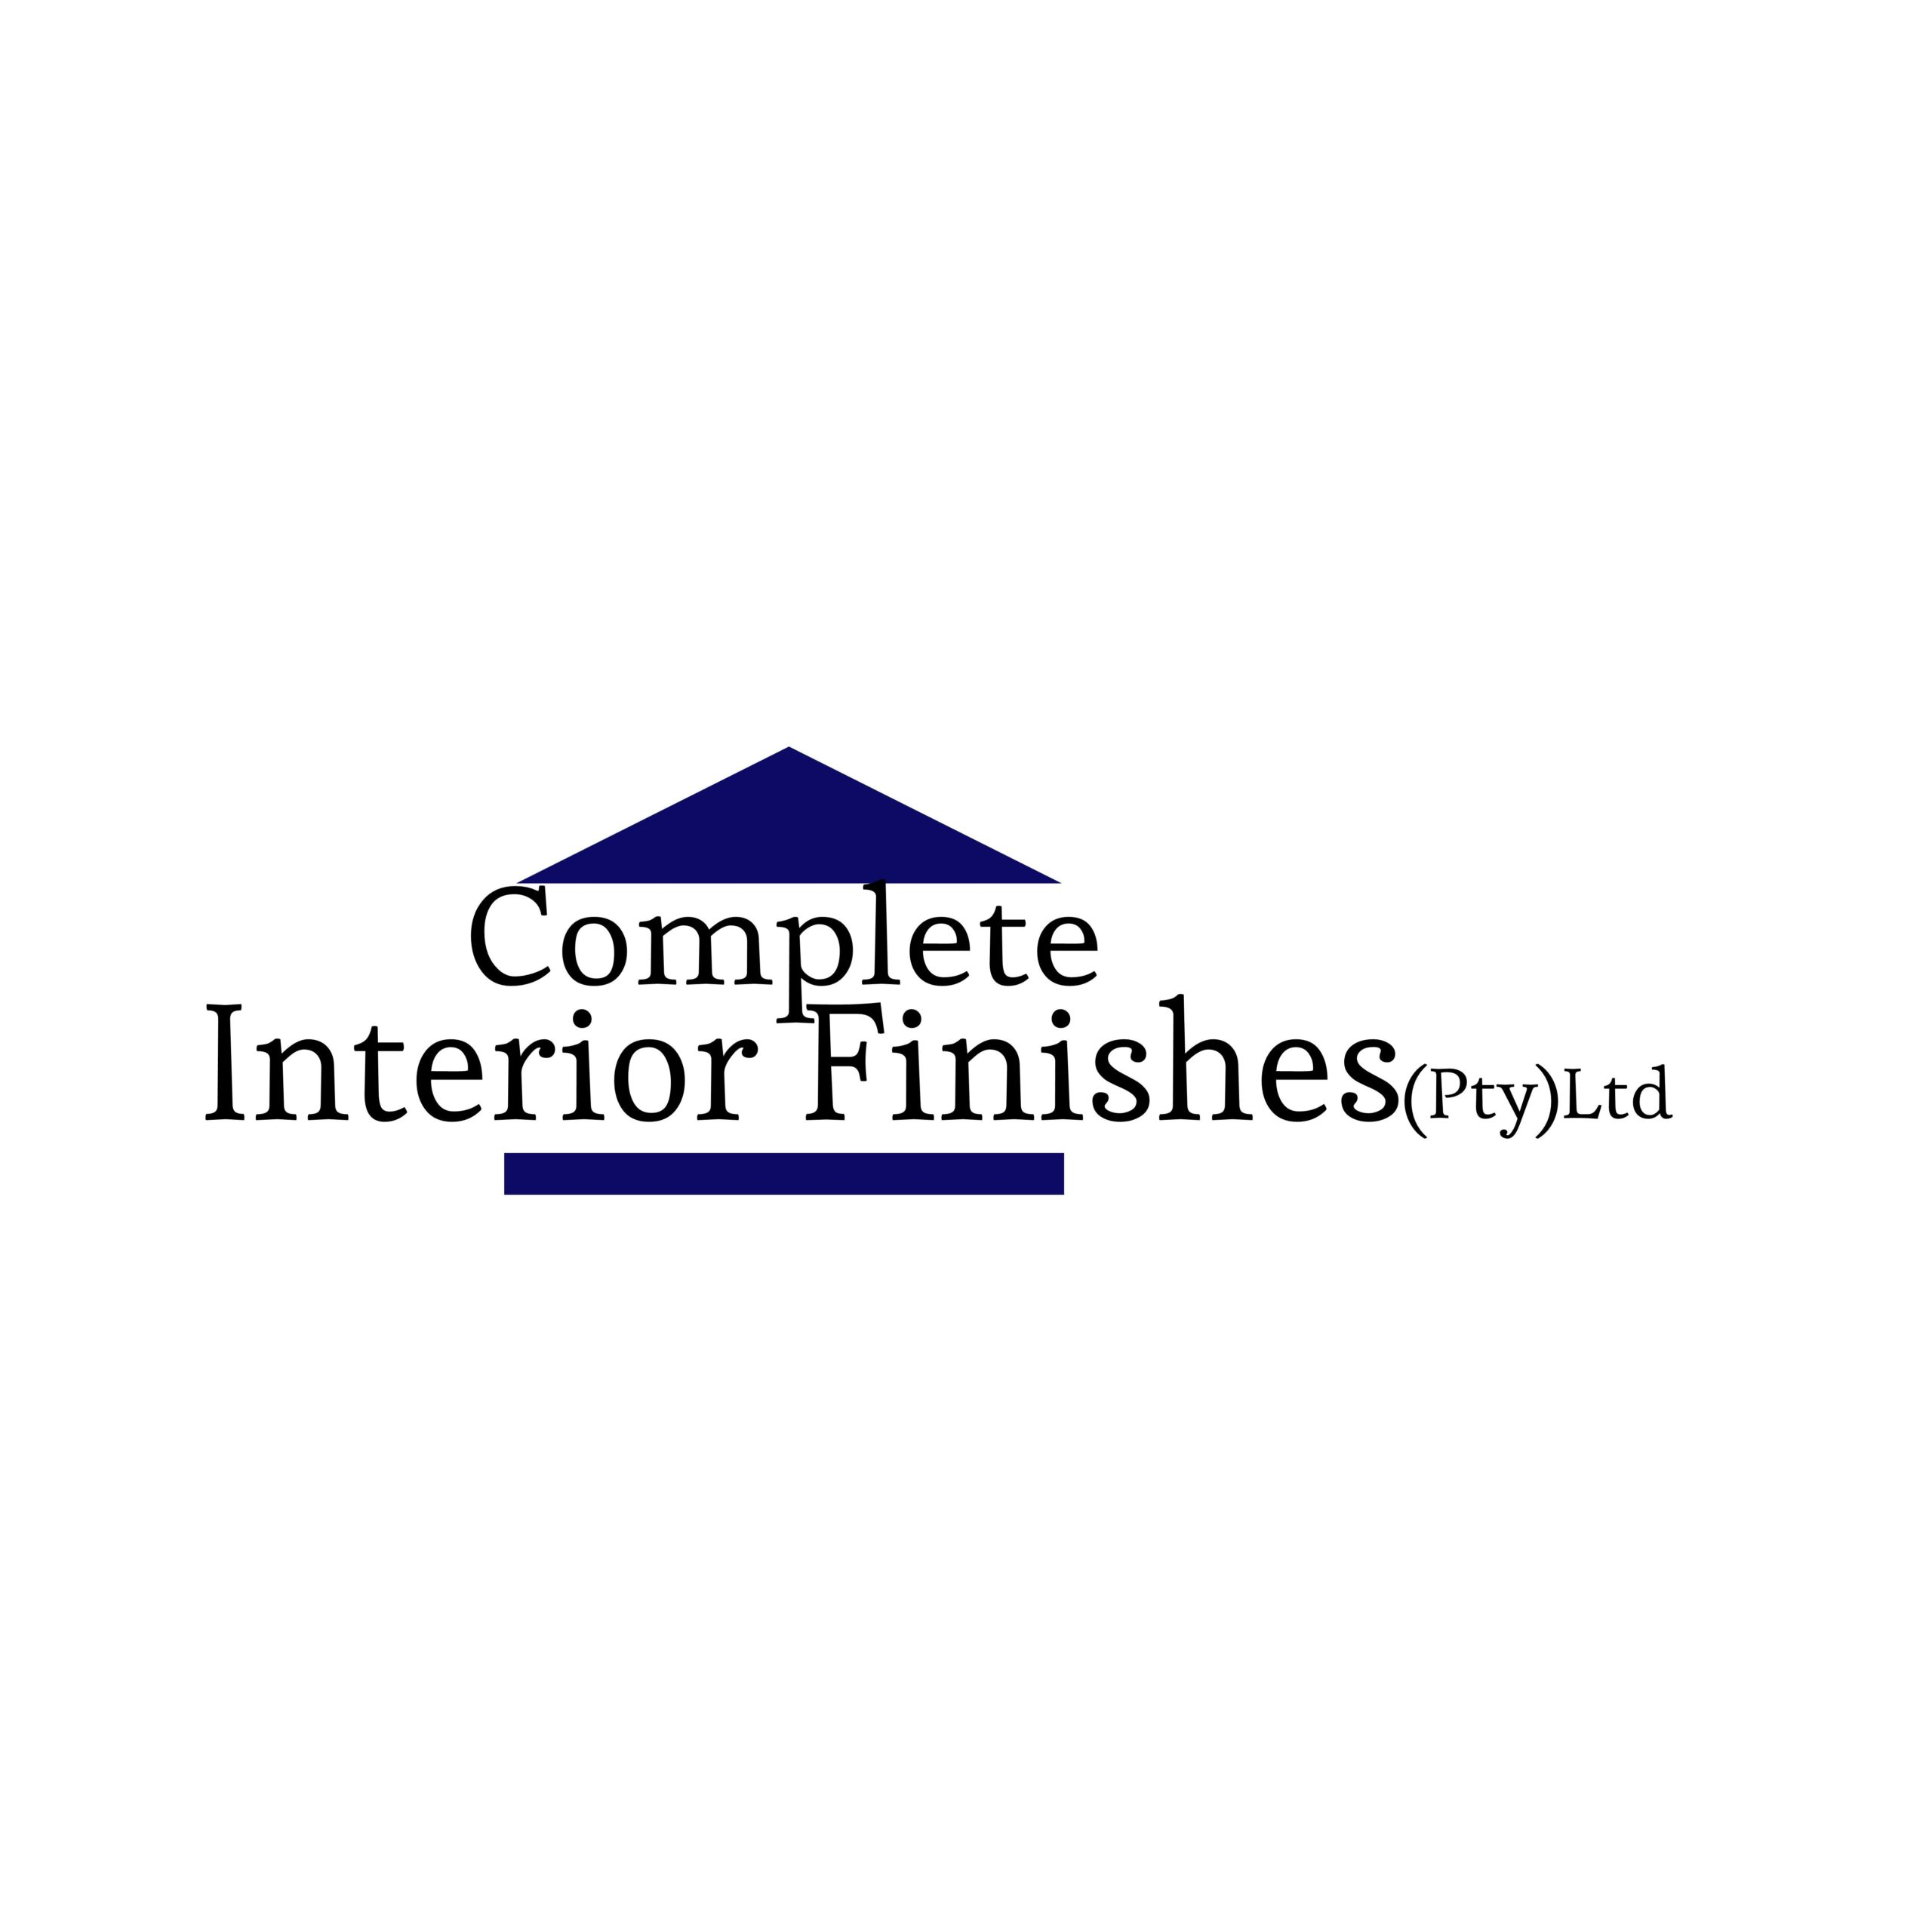 Complete Interior Finishes – Durban